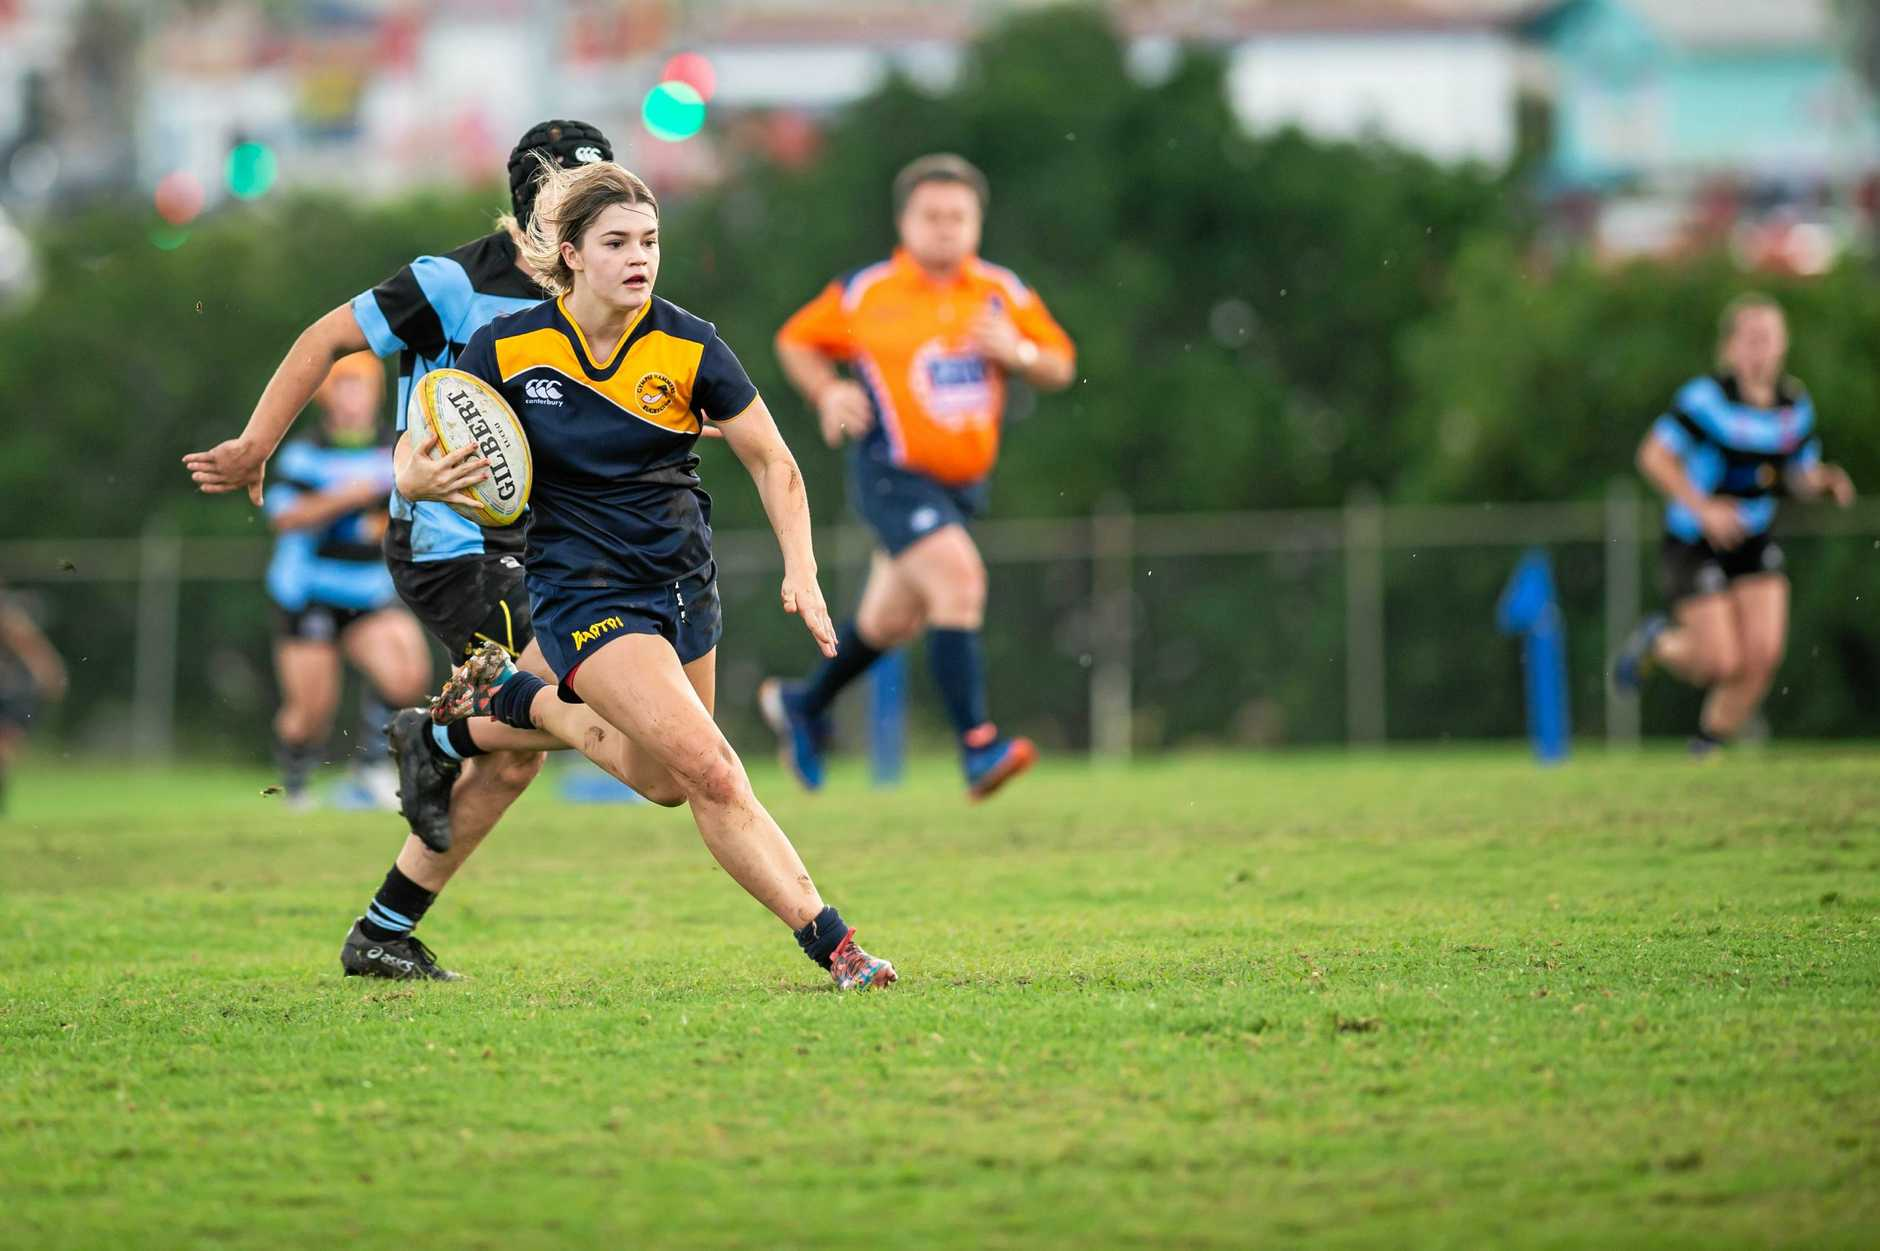 Rugby Union - Gympie Hammers Ladies Caitlin Urwin